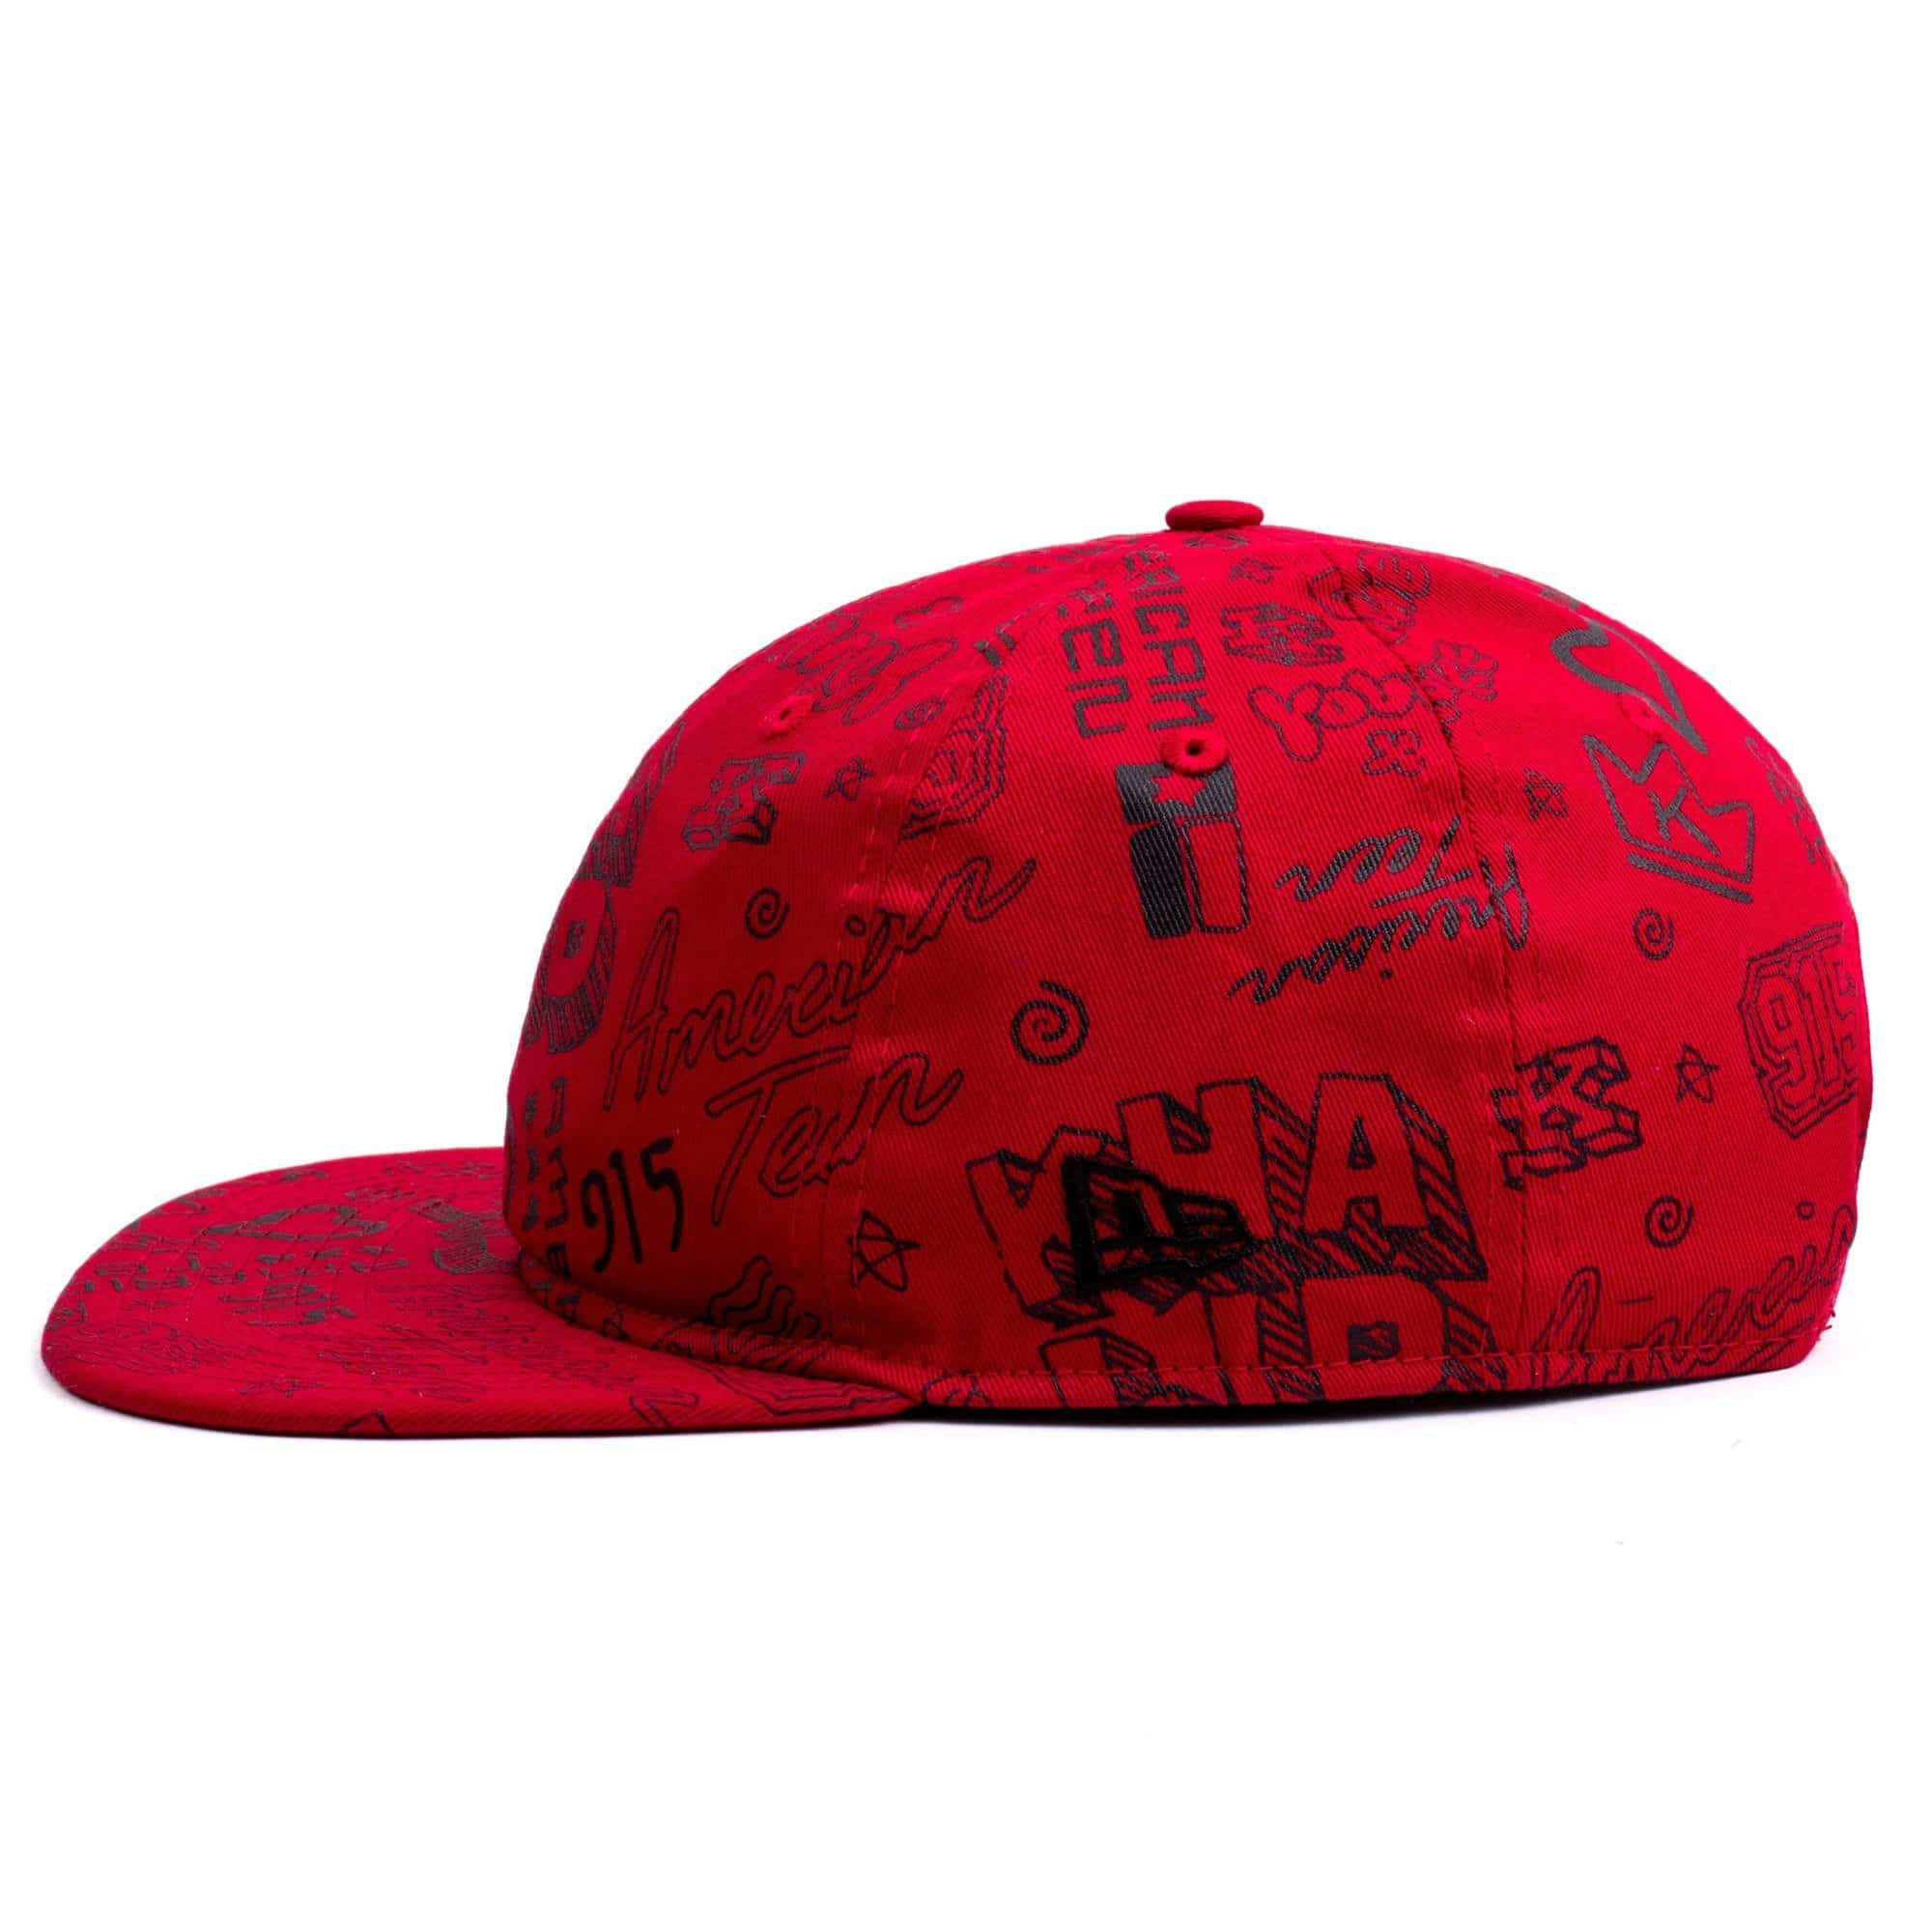 The Gr8 Khalid x New Era 9Twenty Unstructured Snapback